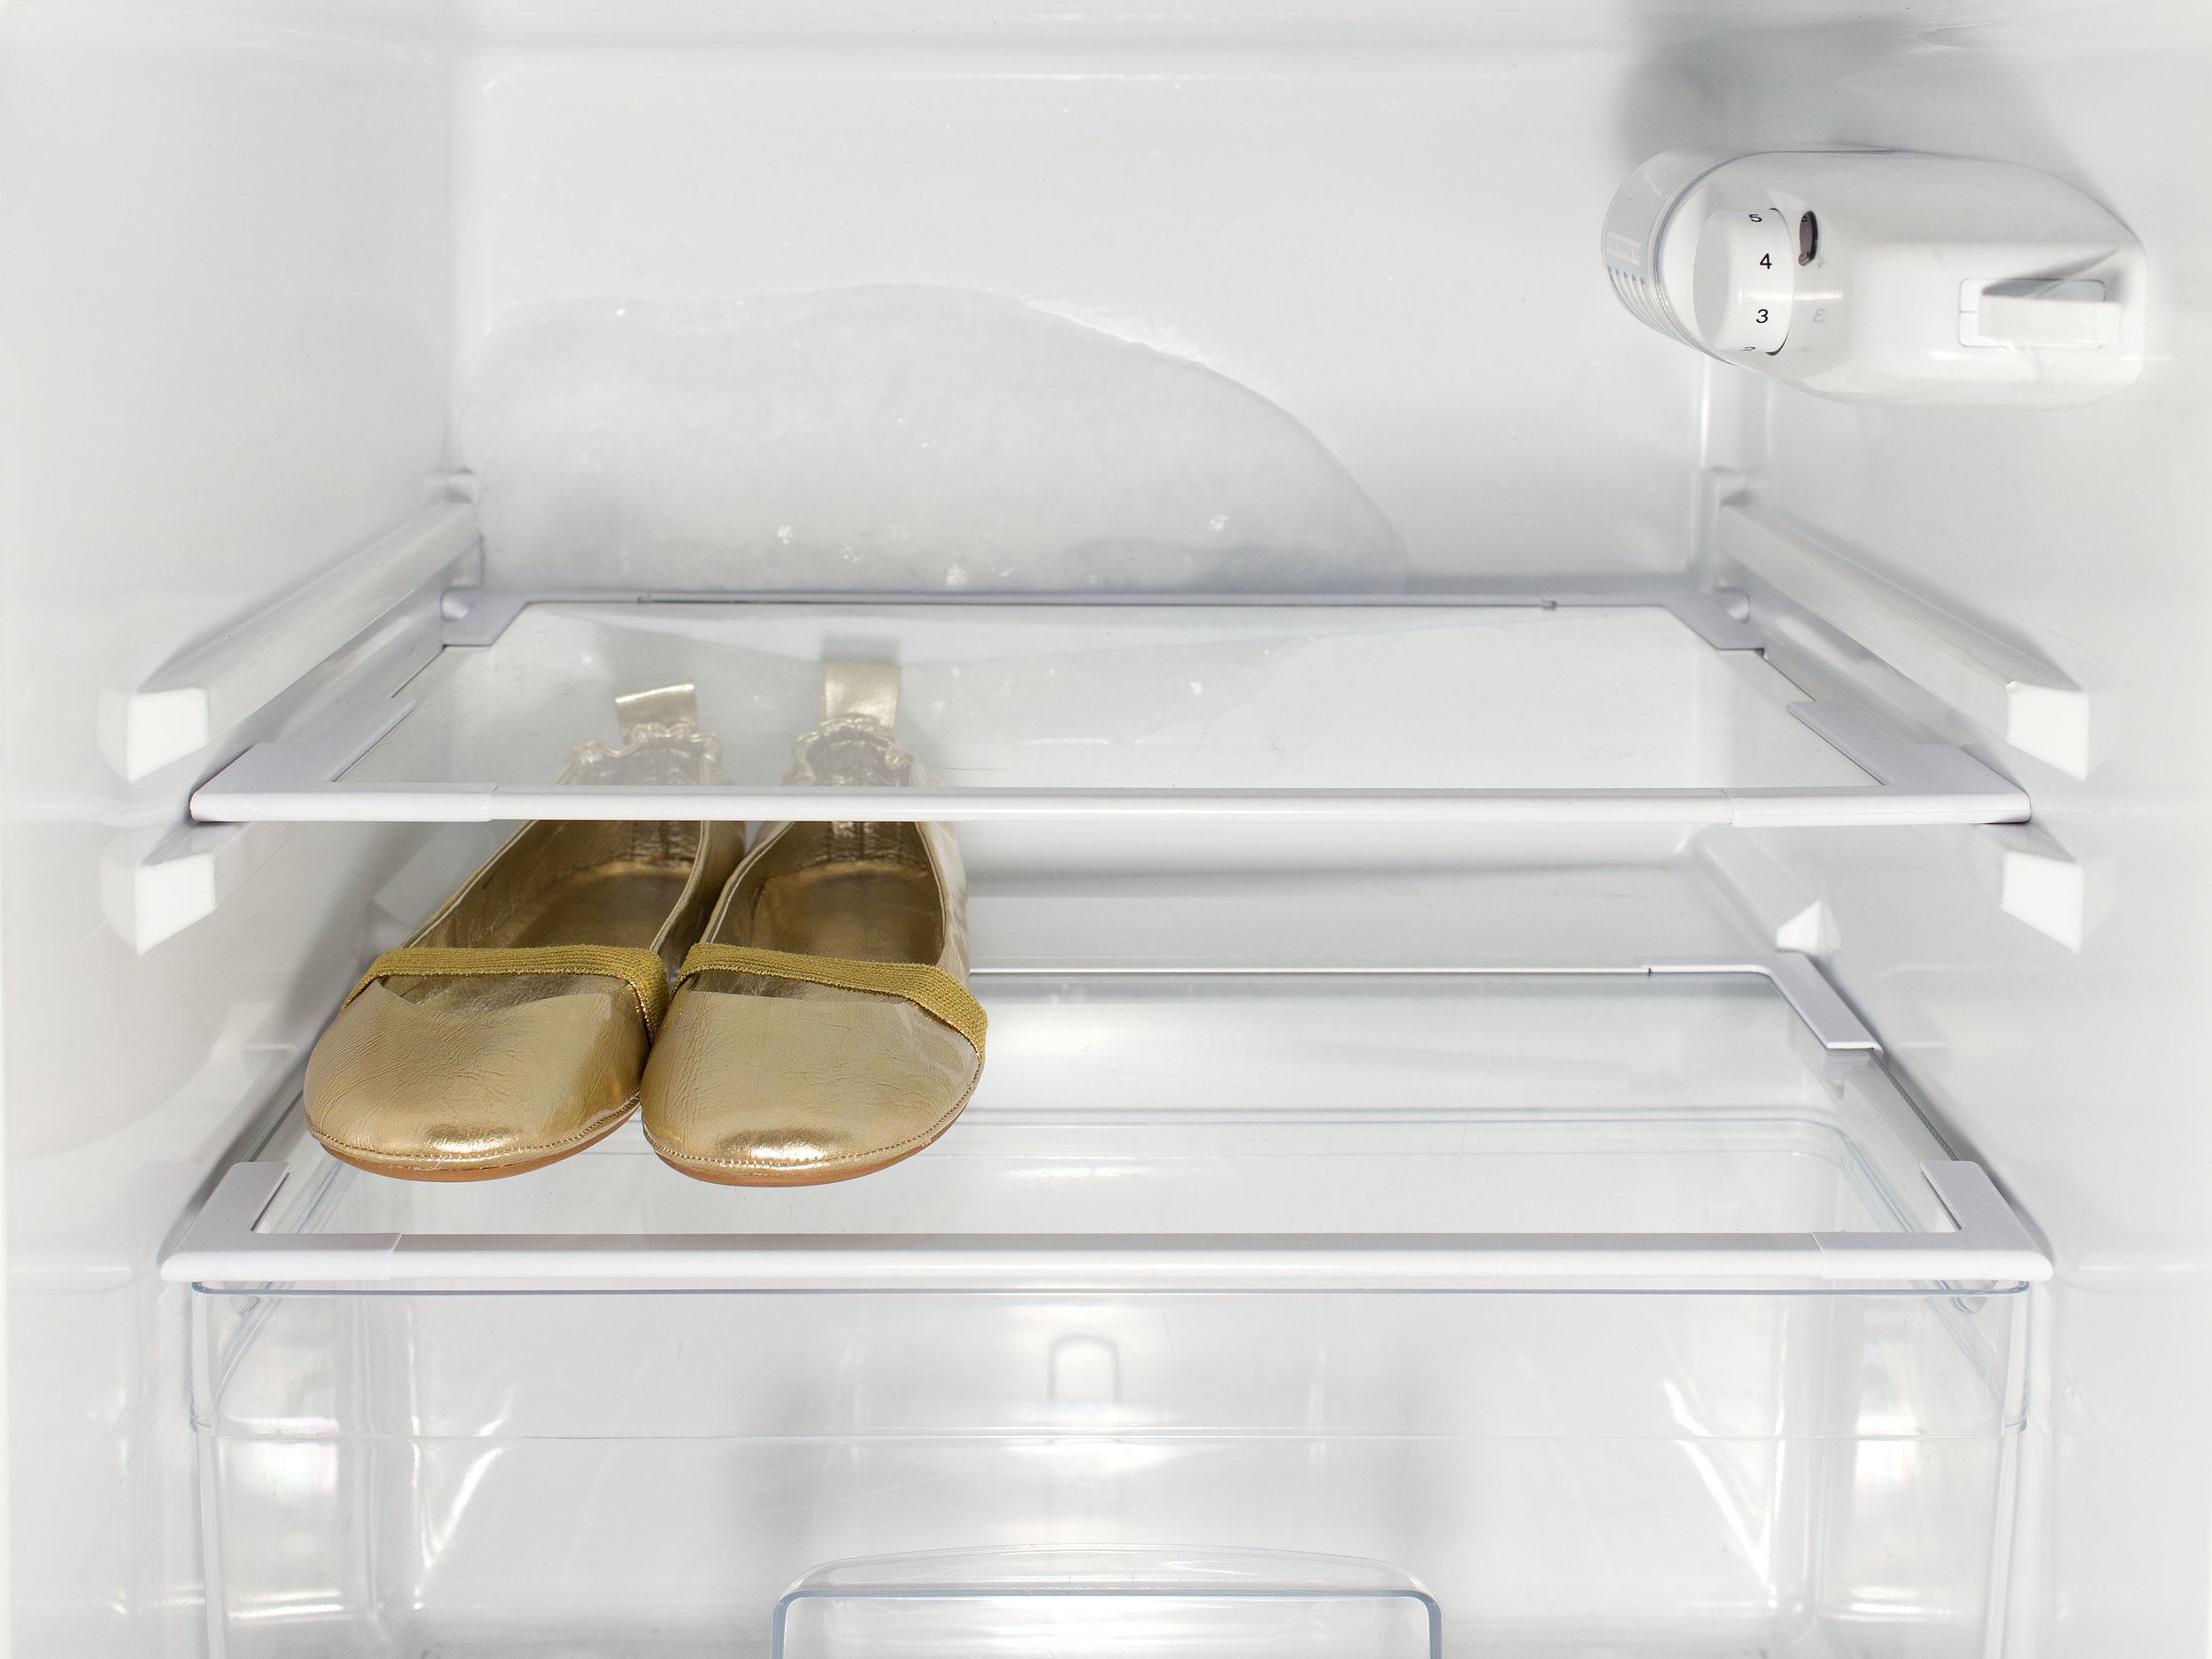 11-Leftovers, Gold Shoes.jpg